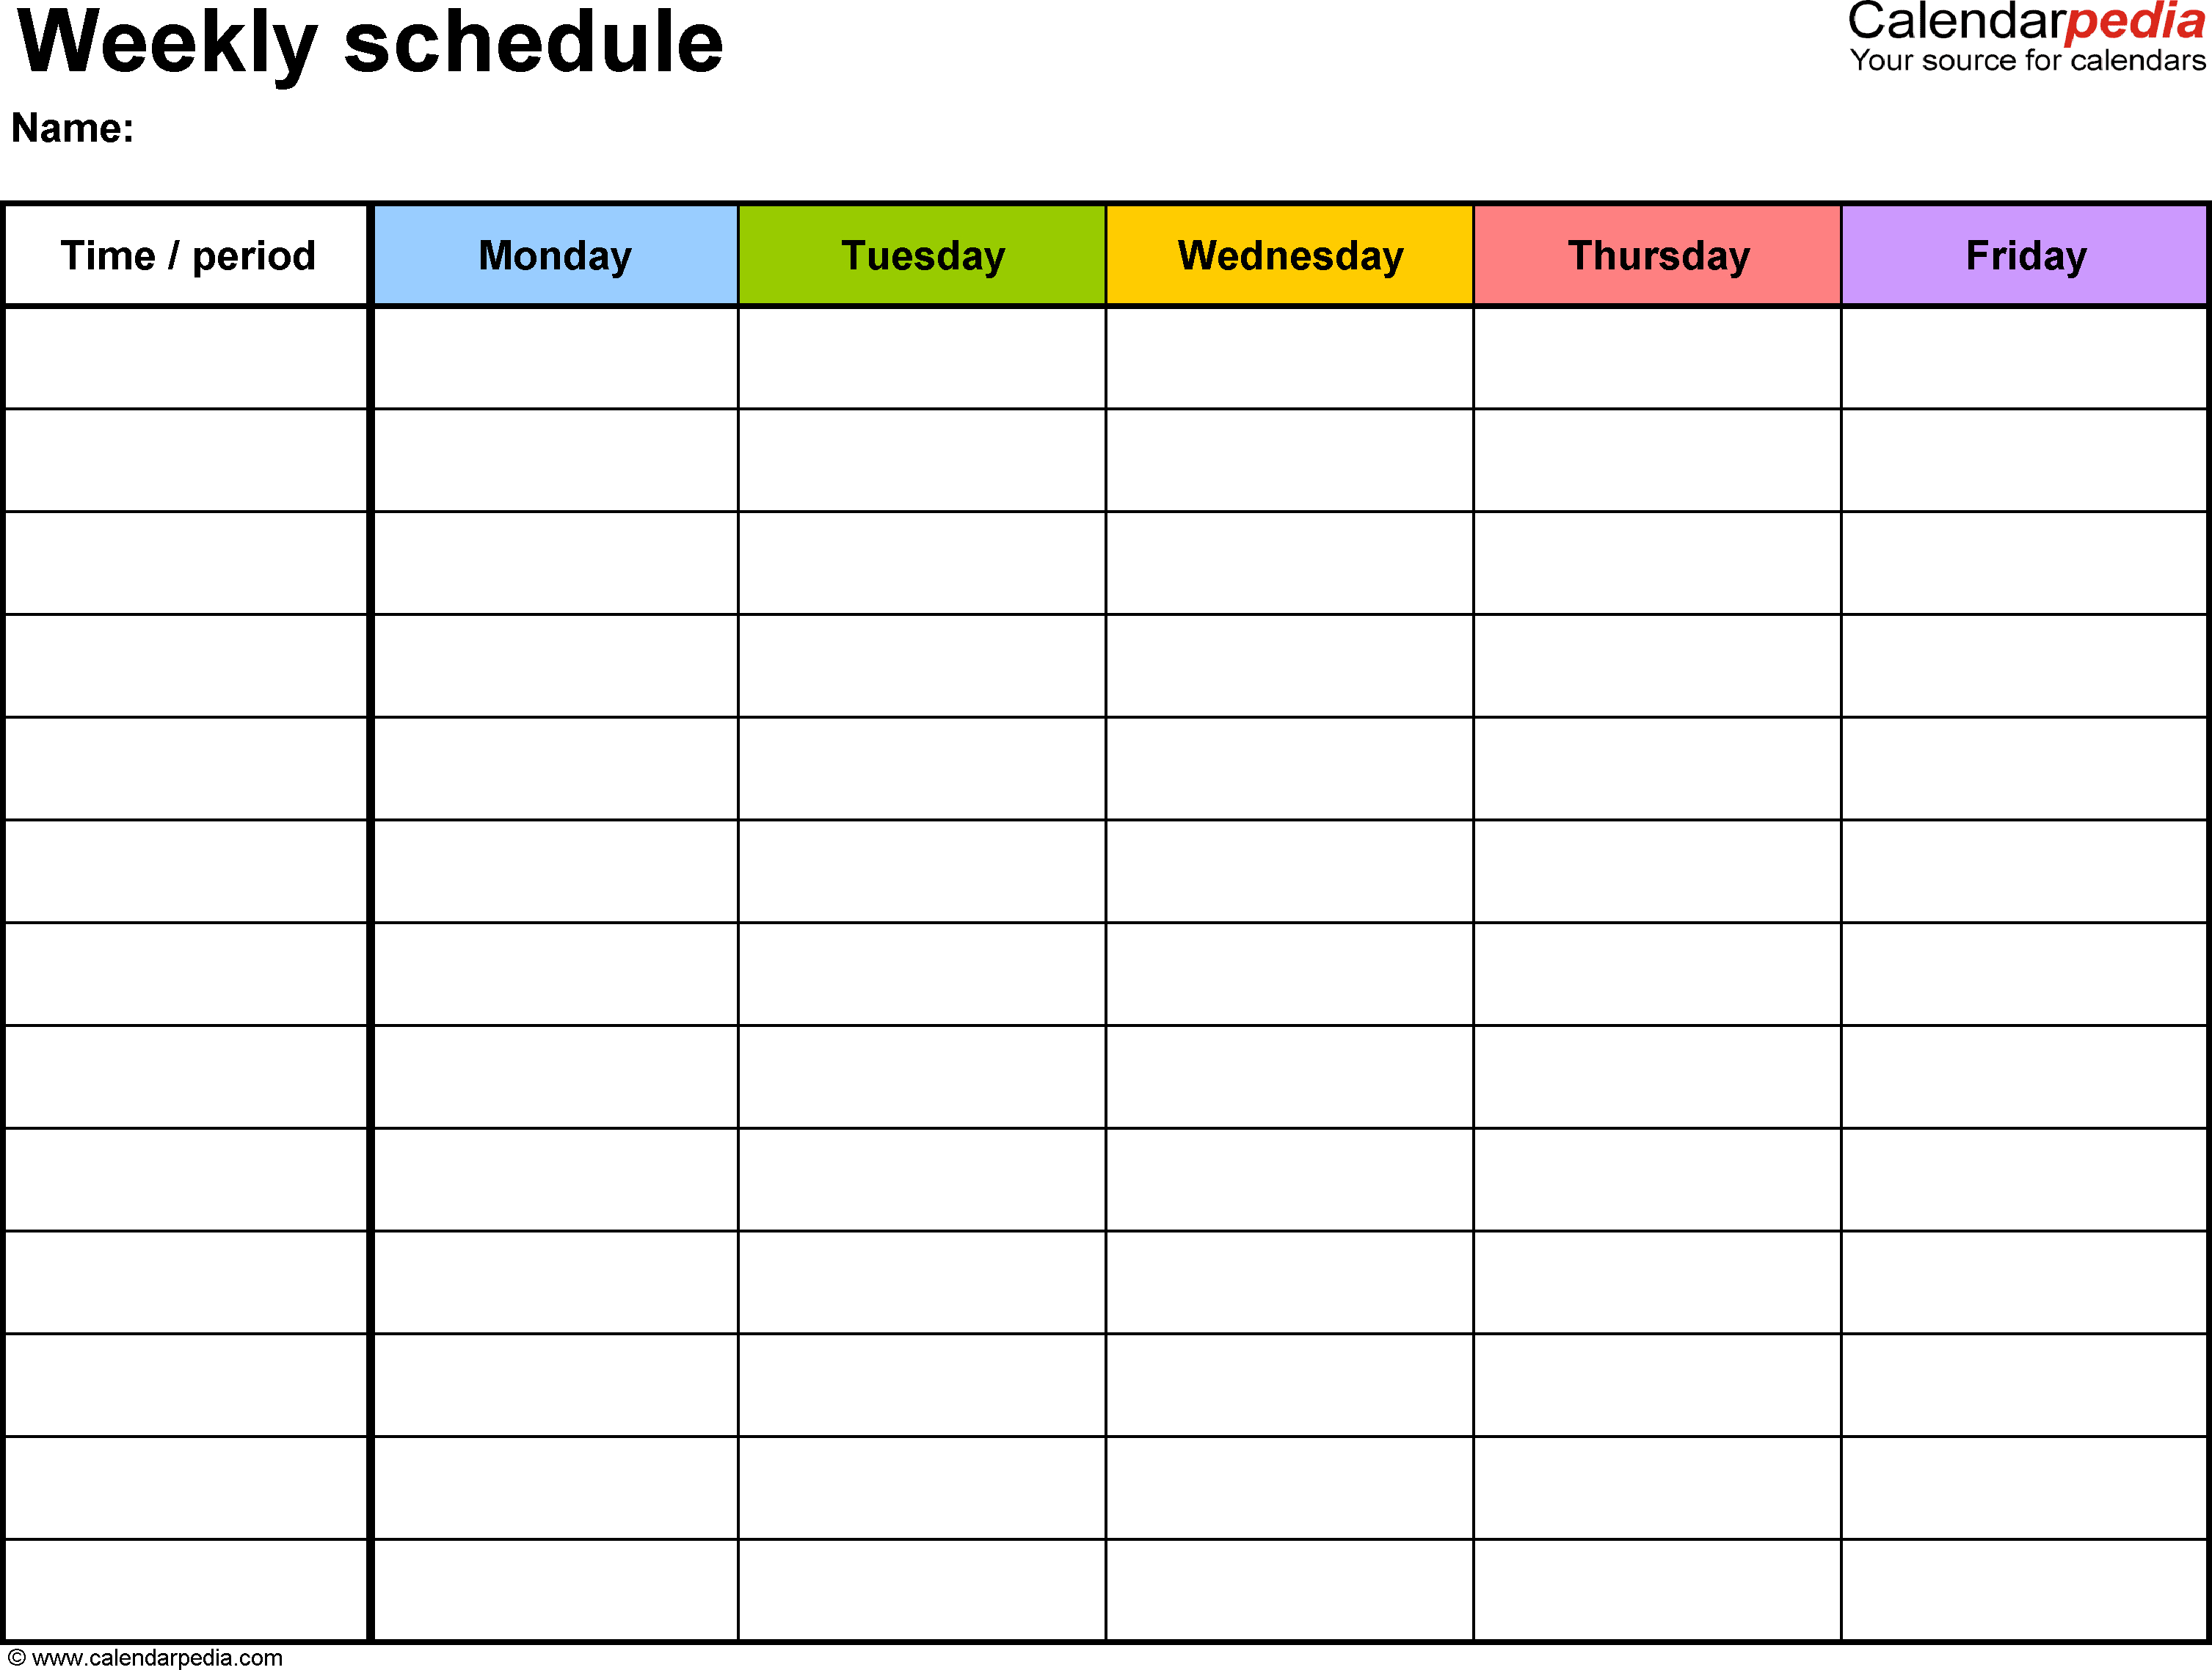 Free Weekly Schedule Templates For Word - 18 Templates in Printable Blank Weekly Employee Schedule